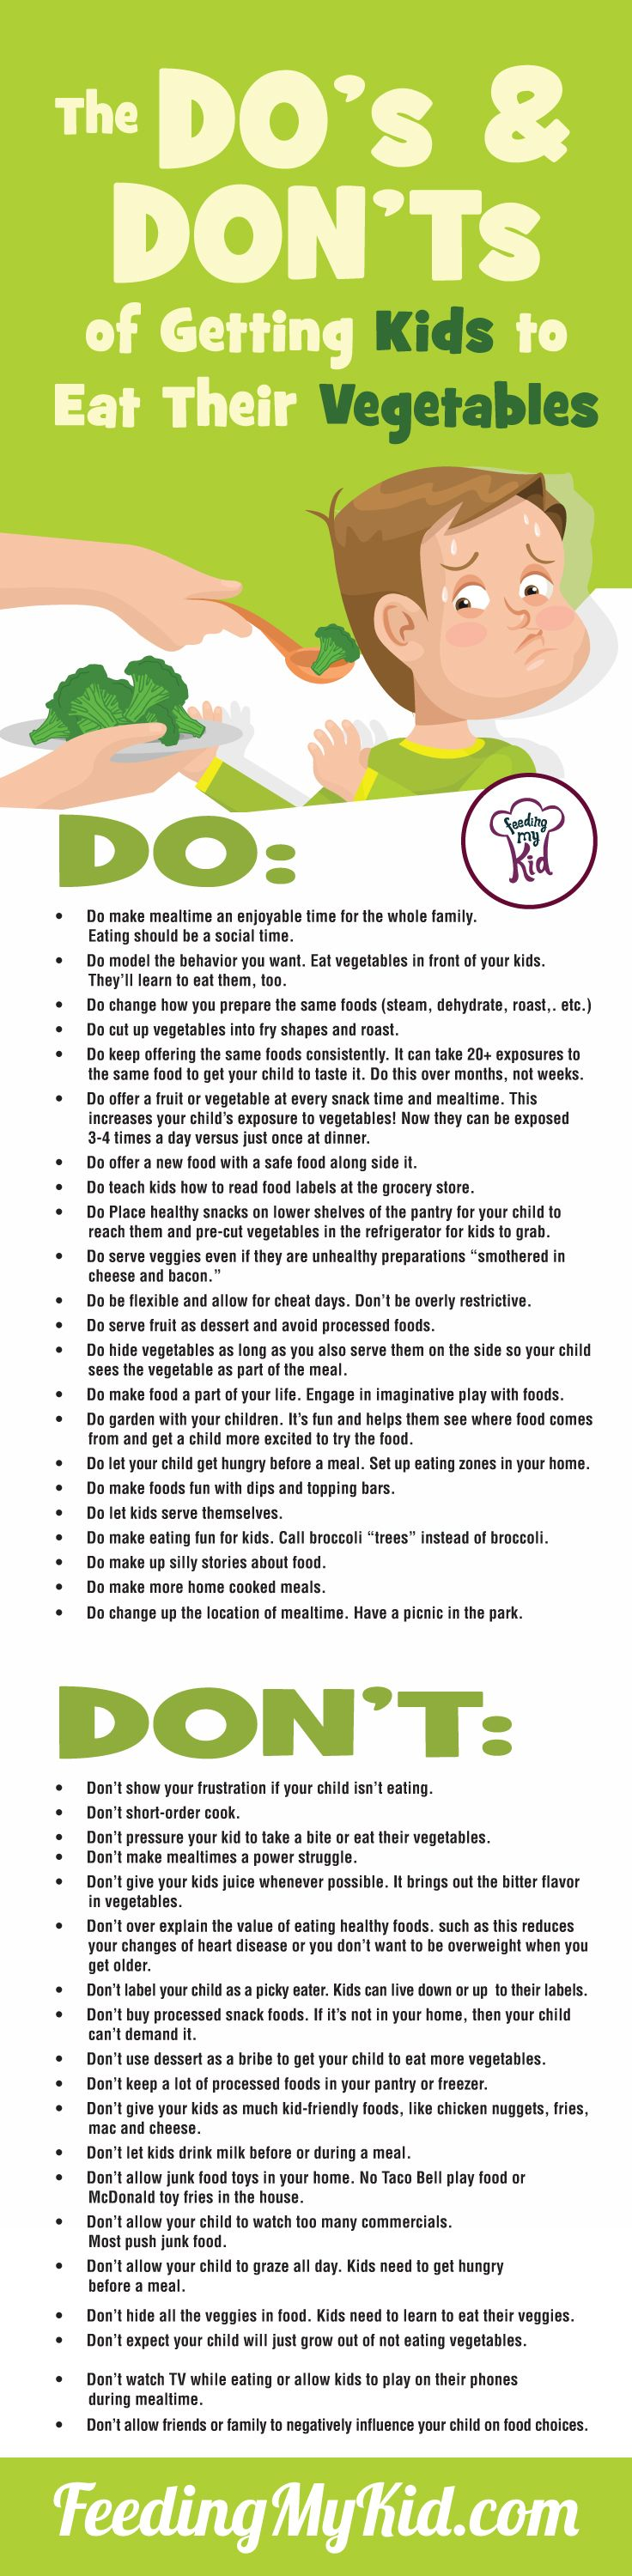 This infographic on the do's and don'ts of how to get kids to eat vegetables will help guide you on your way to transforming your picky eater into a happy, adventurous eater who isn't afraid of a stick of celery. Feeding My Kid is a filled with all the information you need about how to raise your kids, from healthy tips to nutritious recipes. #pickyeating #infographic #parenting